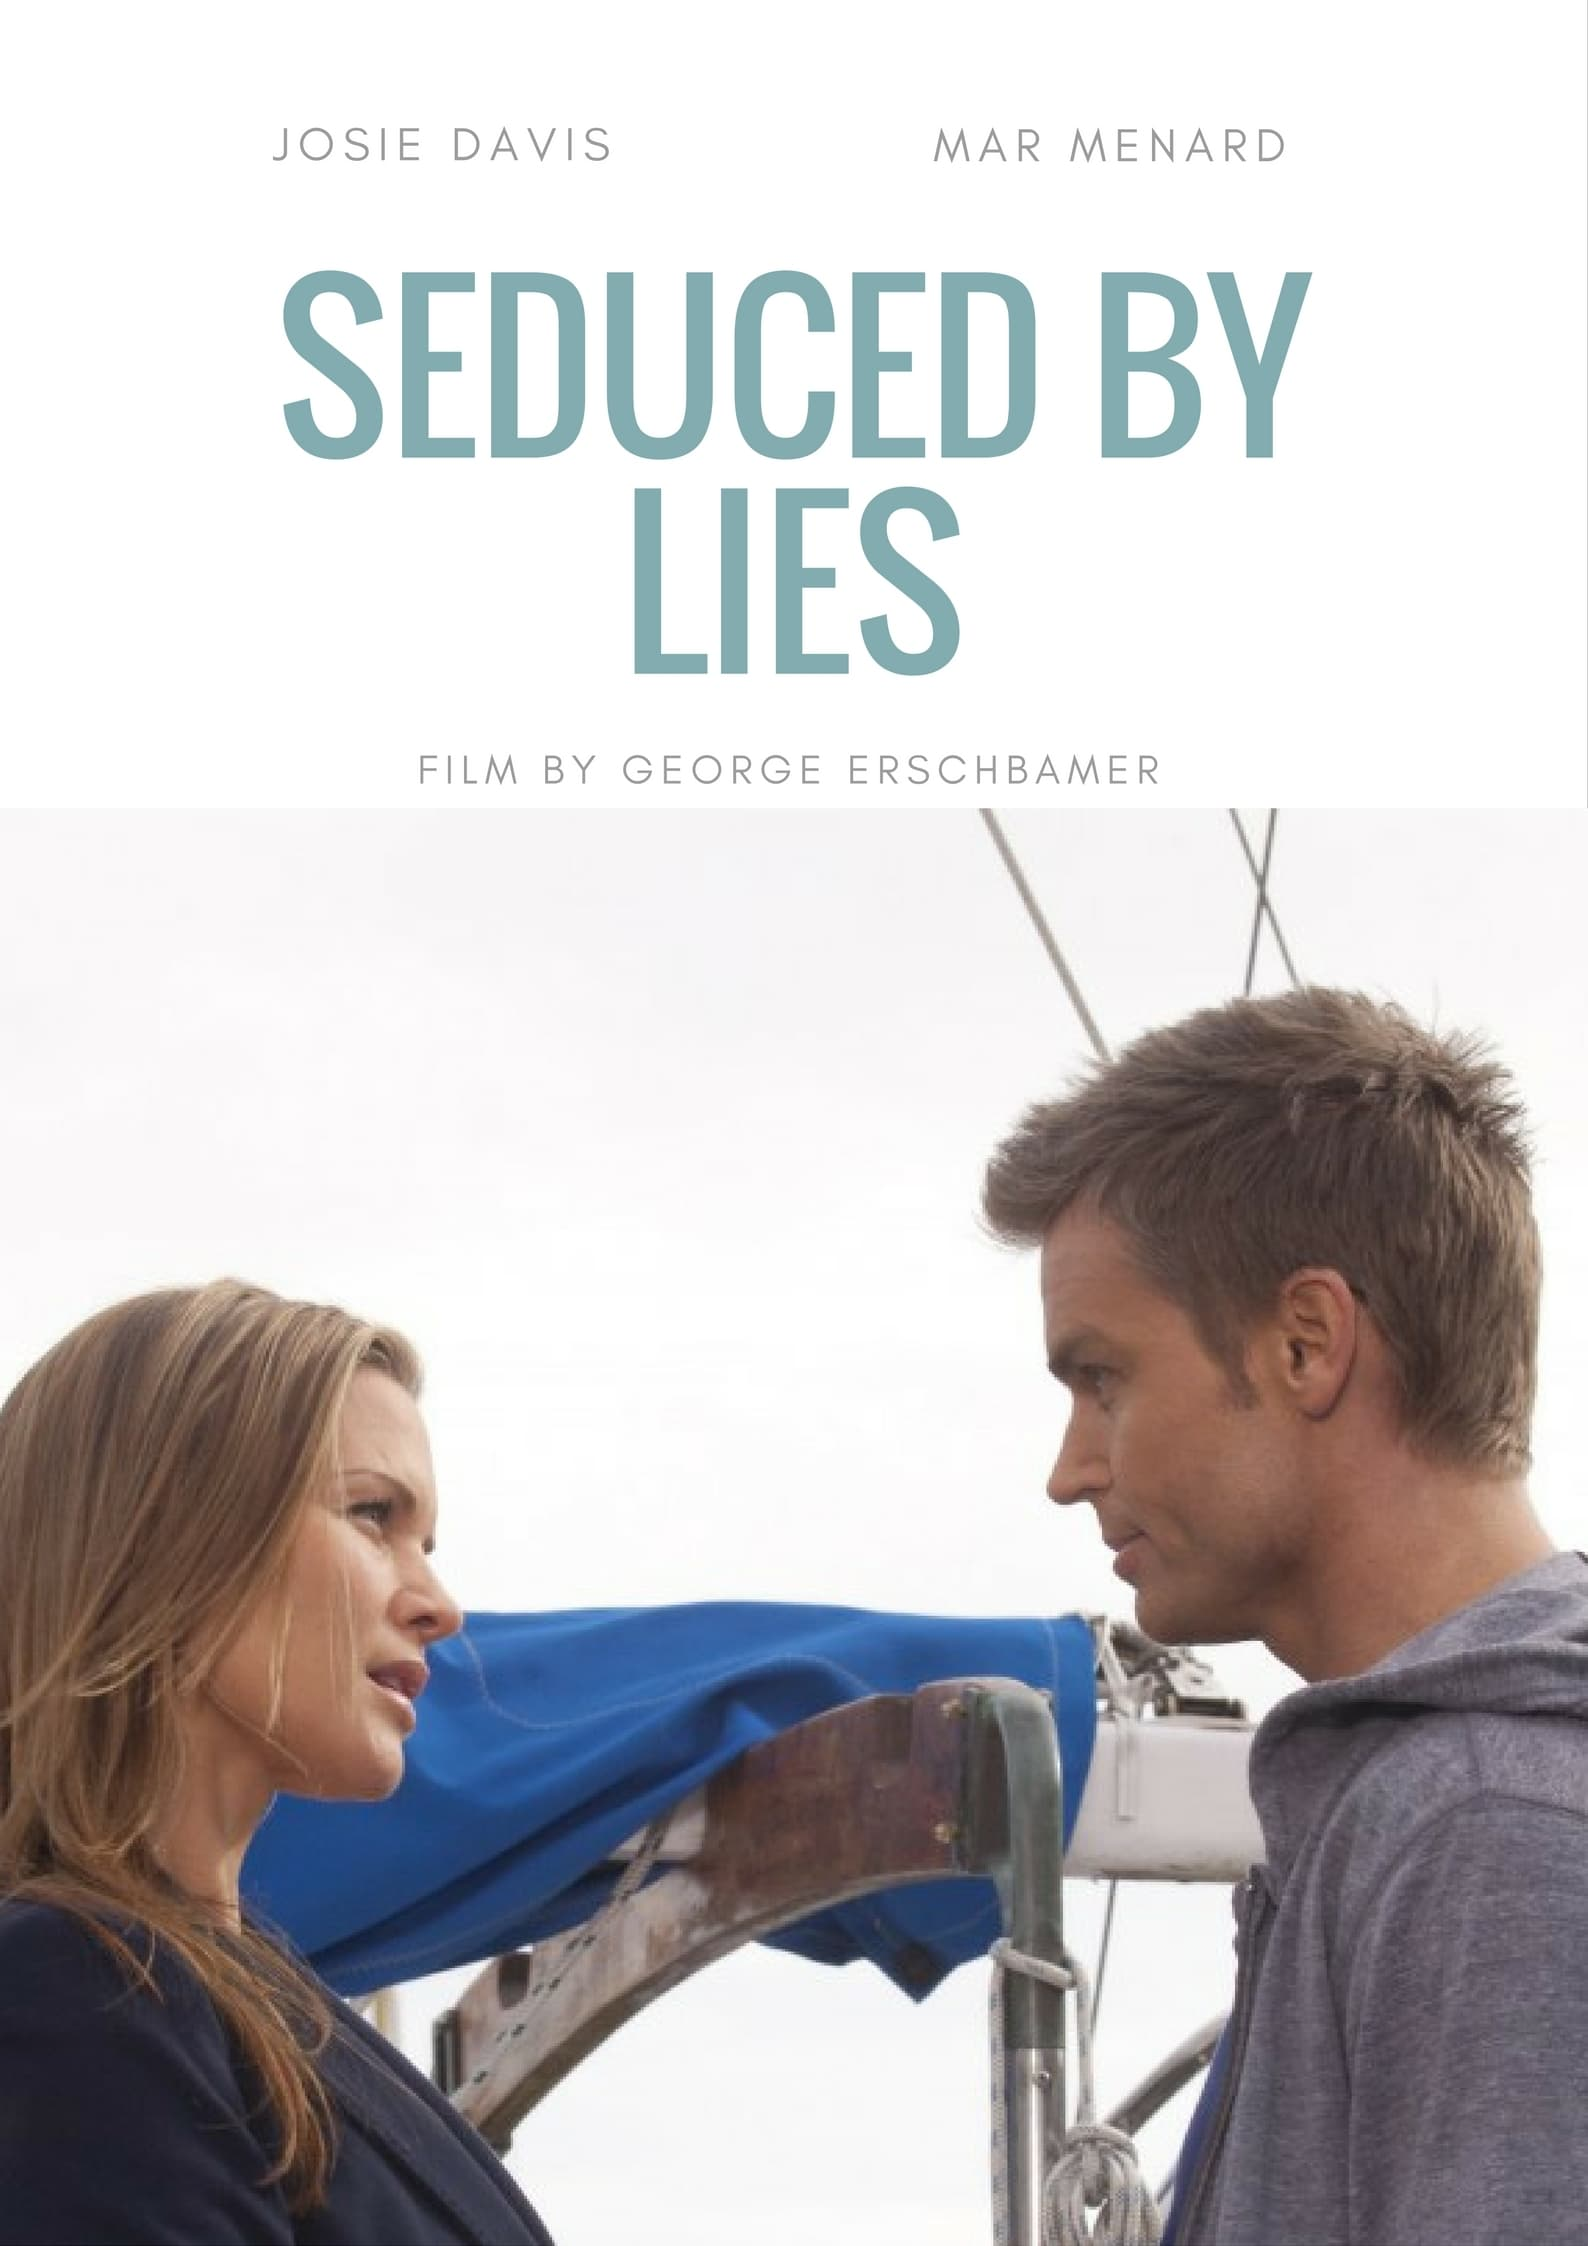 Cast in sex lies and obsession